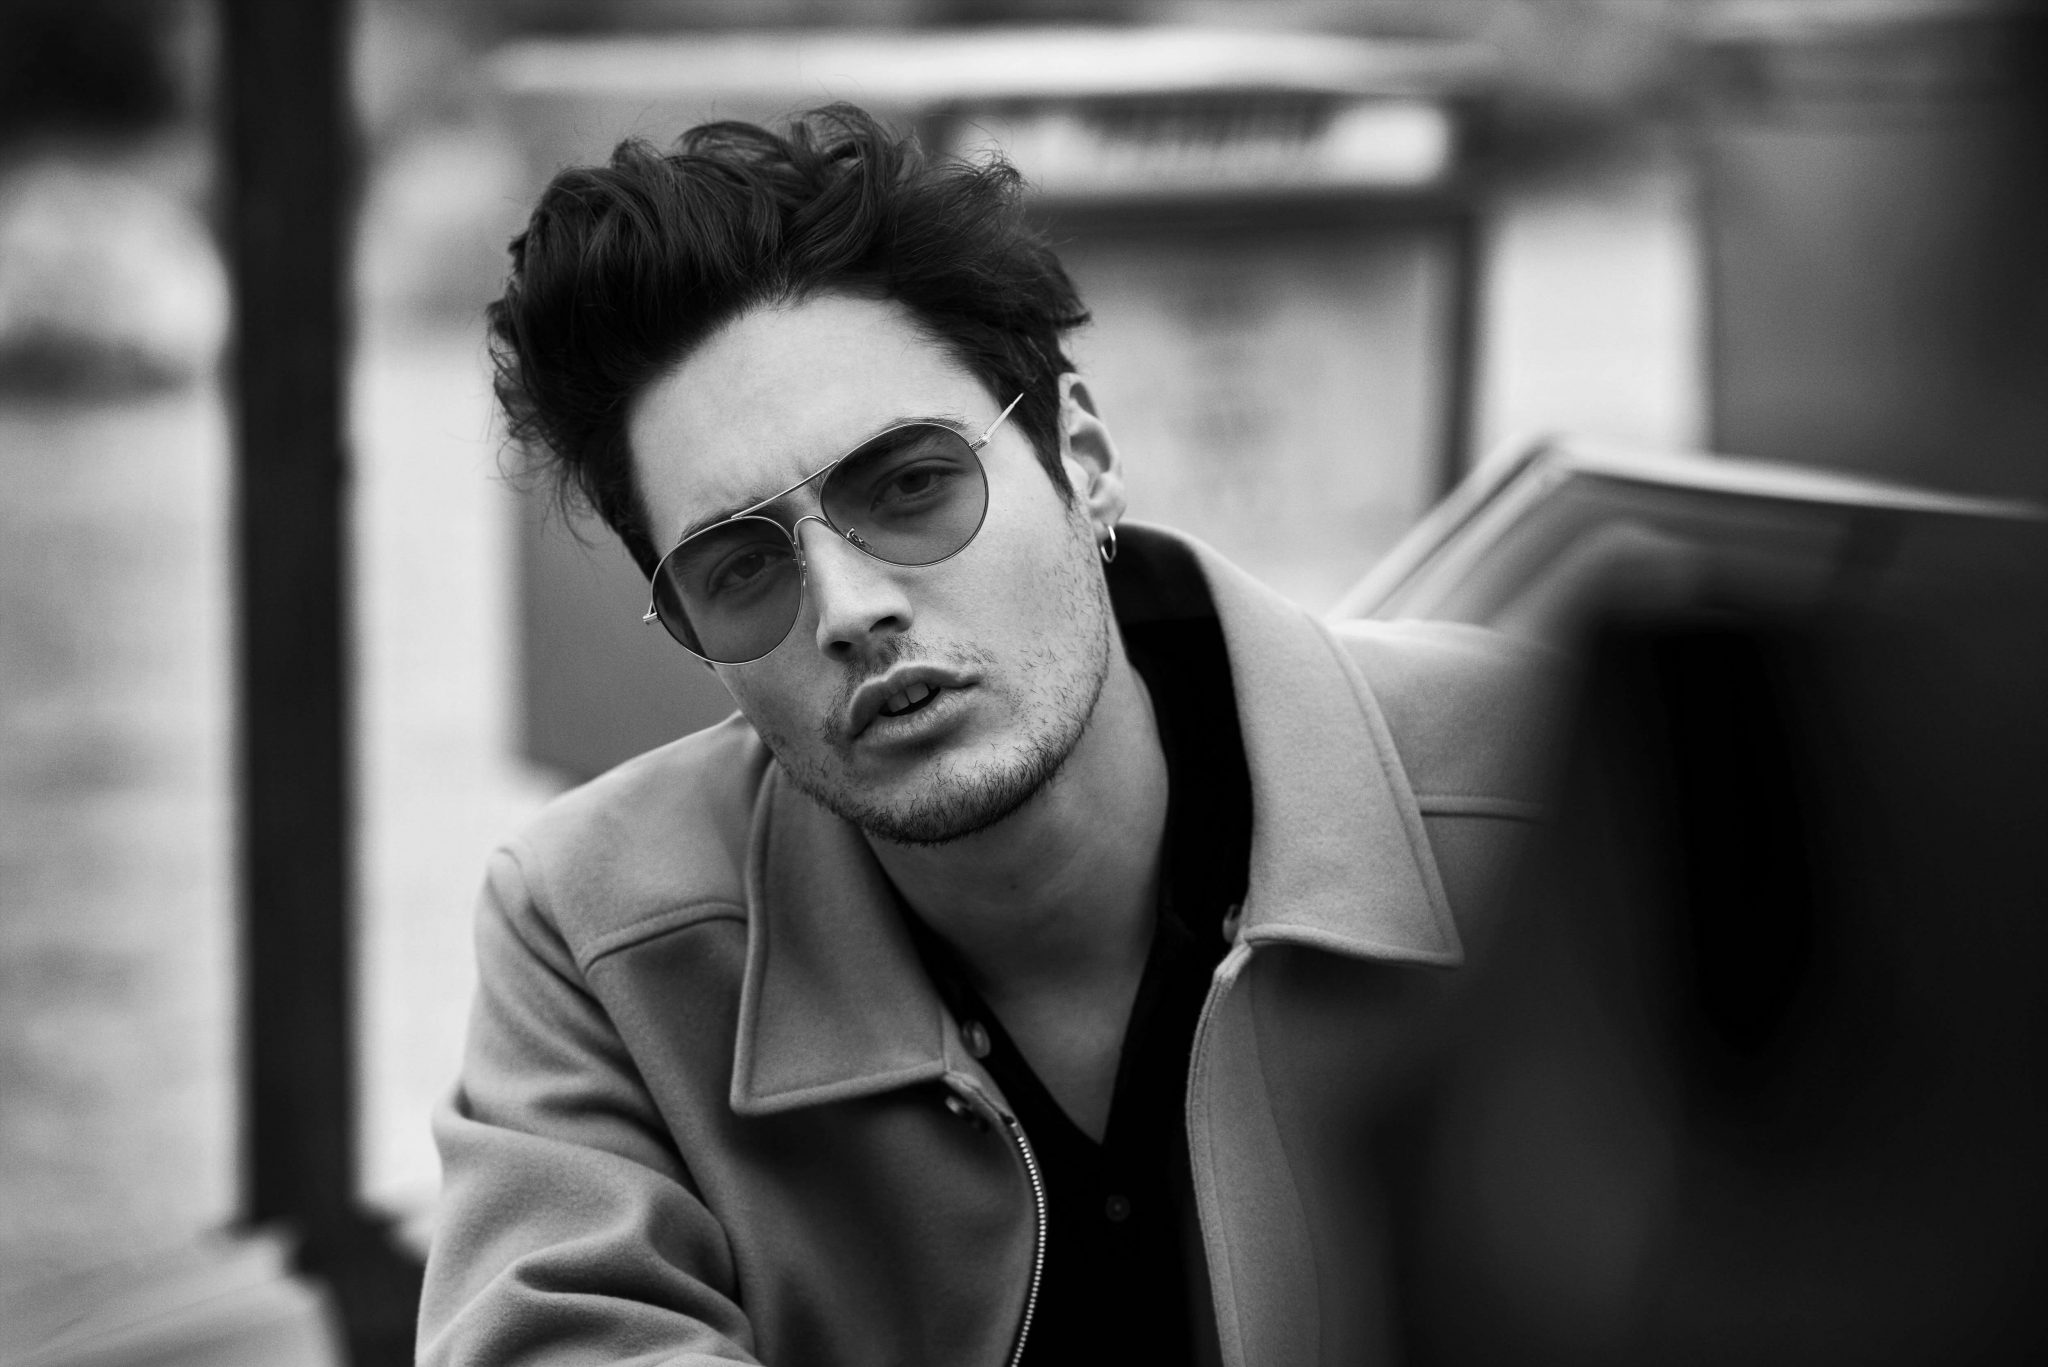 Oliver Peoples 30th anniversary campaign 2